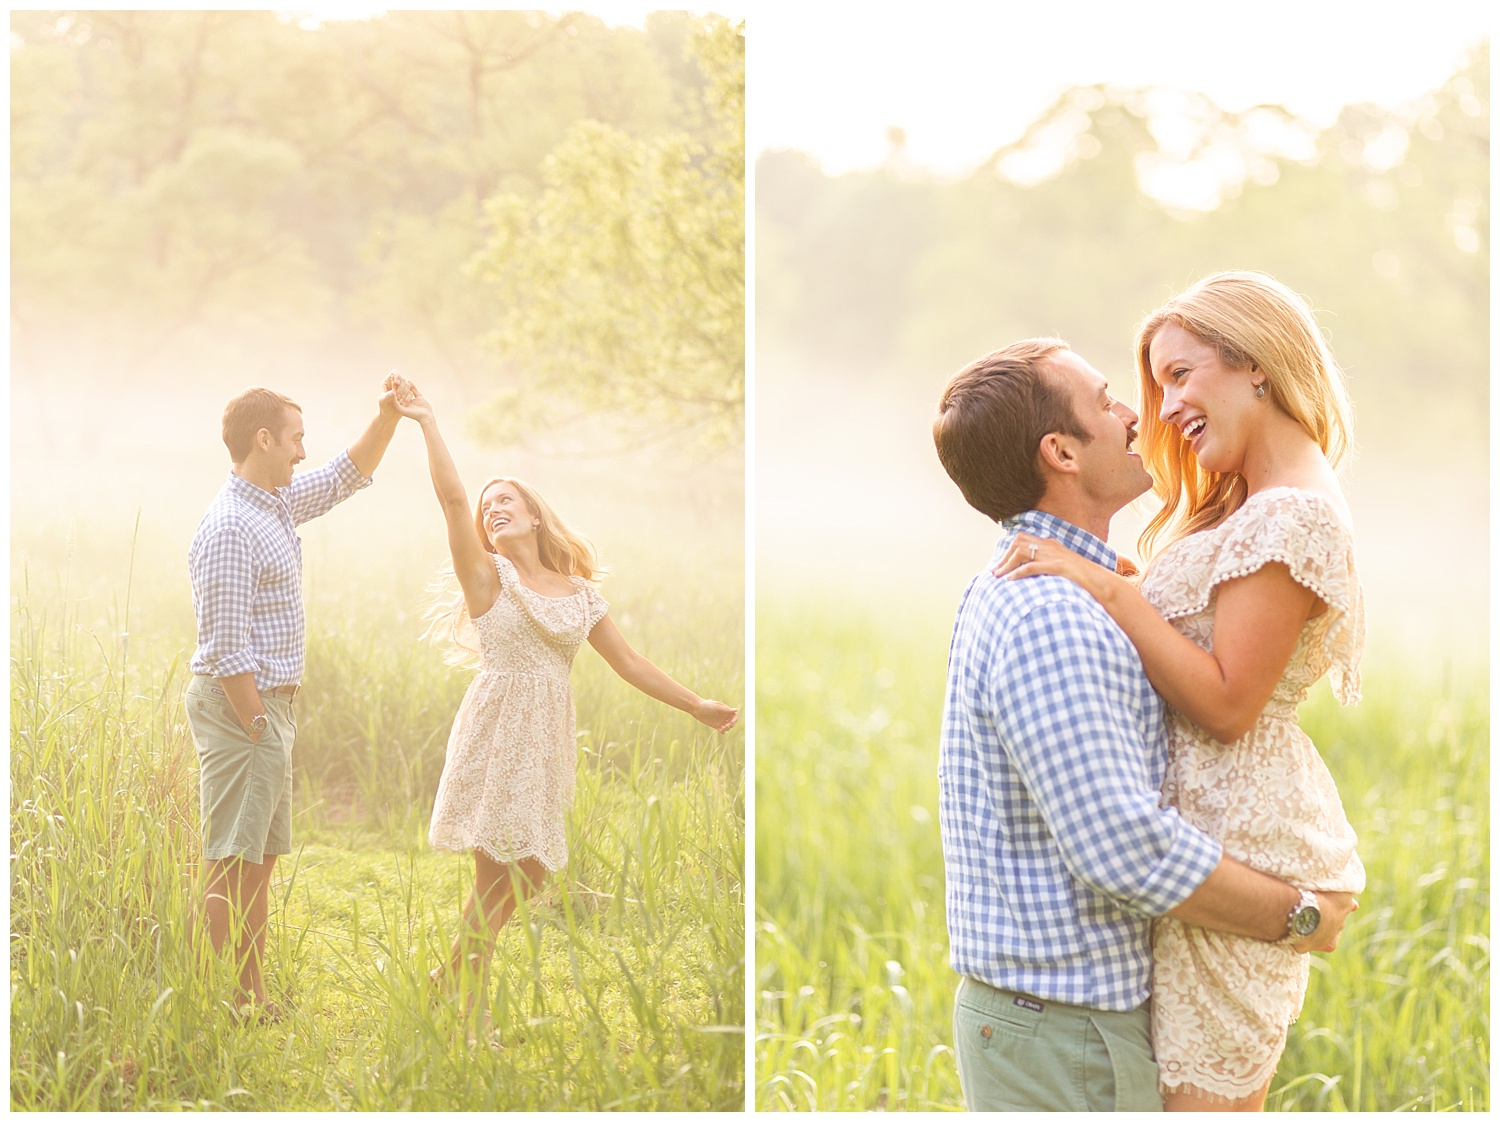 emily-belson-photography-spring-maryland-engagement-19.jpg